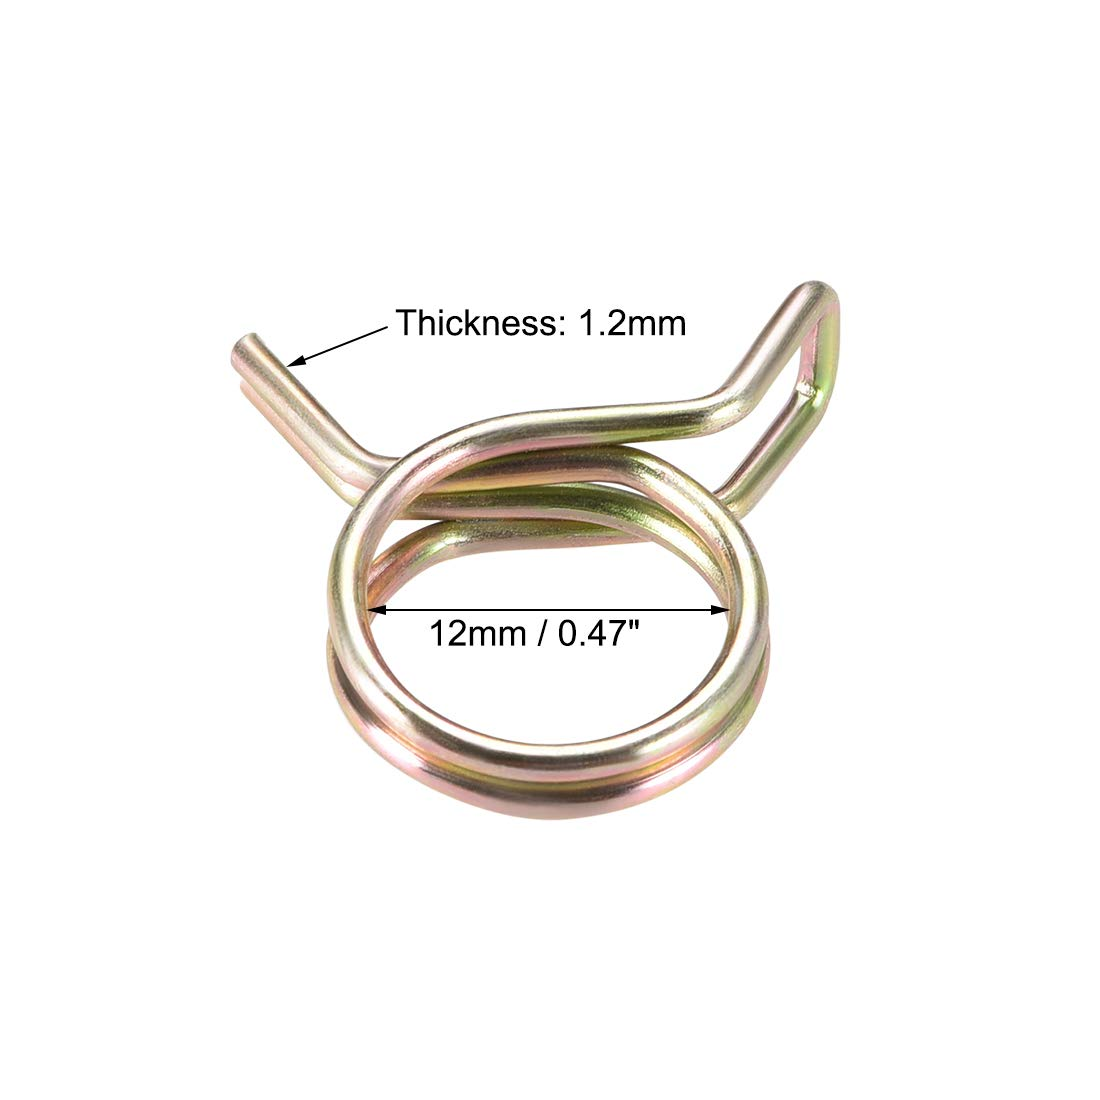 uxcell Double Wire Motorcycle ATV 12mm Fuel Line Silicone Hose Tube Spring Clips Clamp Zinc Plated 20Pcs